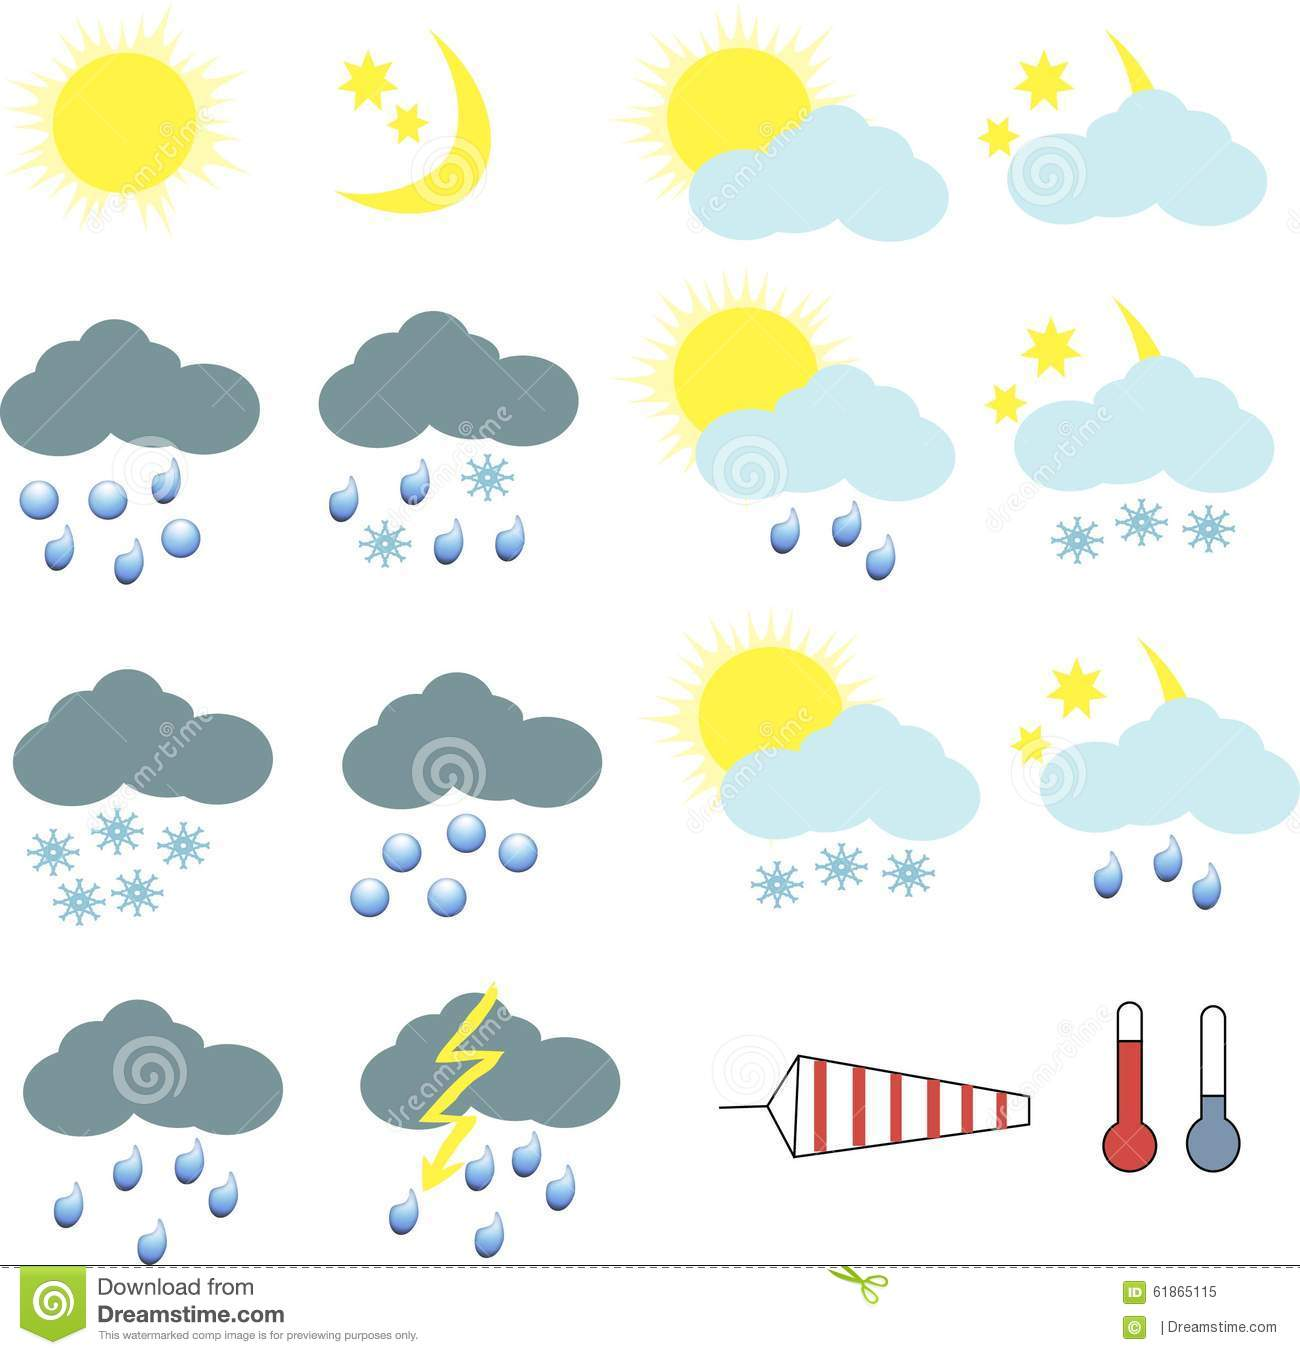 Clipart For Weather Icons Stock Illustration - Image: 61865115